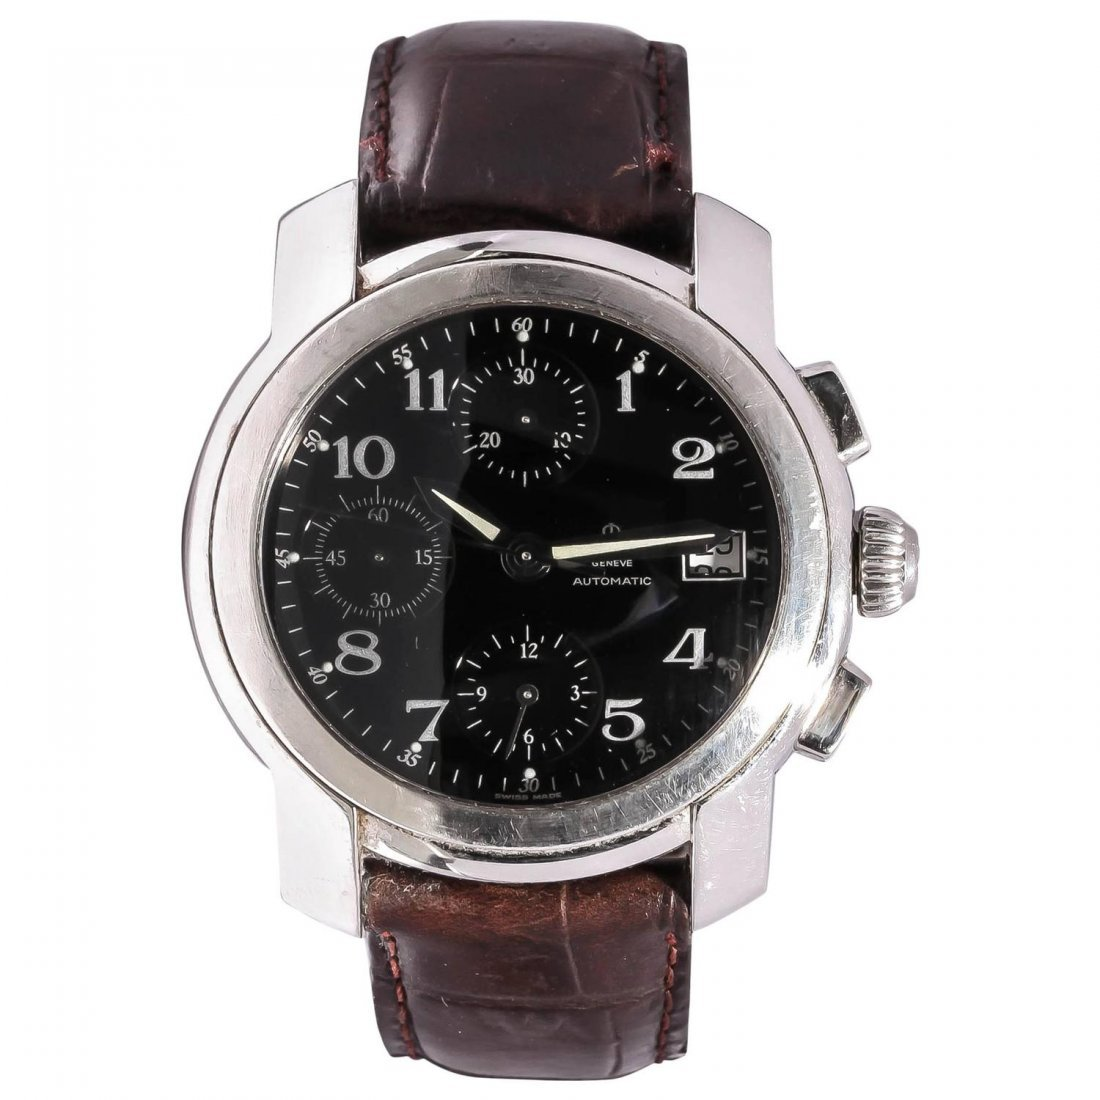 Baume & Mercier Geneve Stainless Steel Automatic